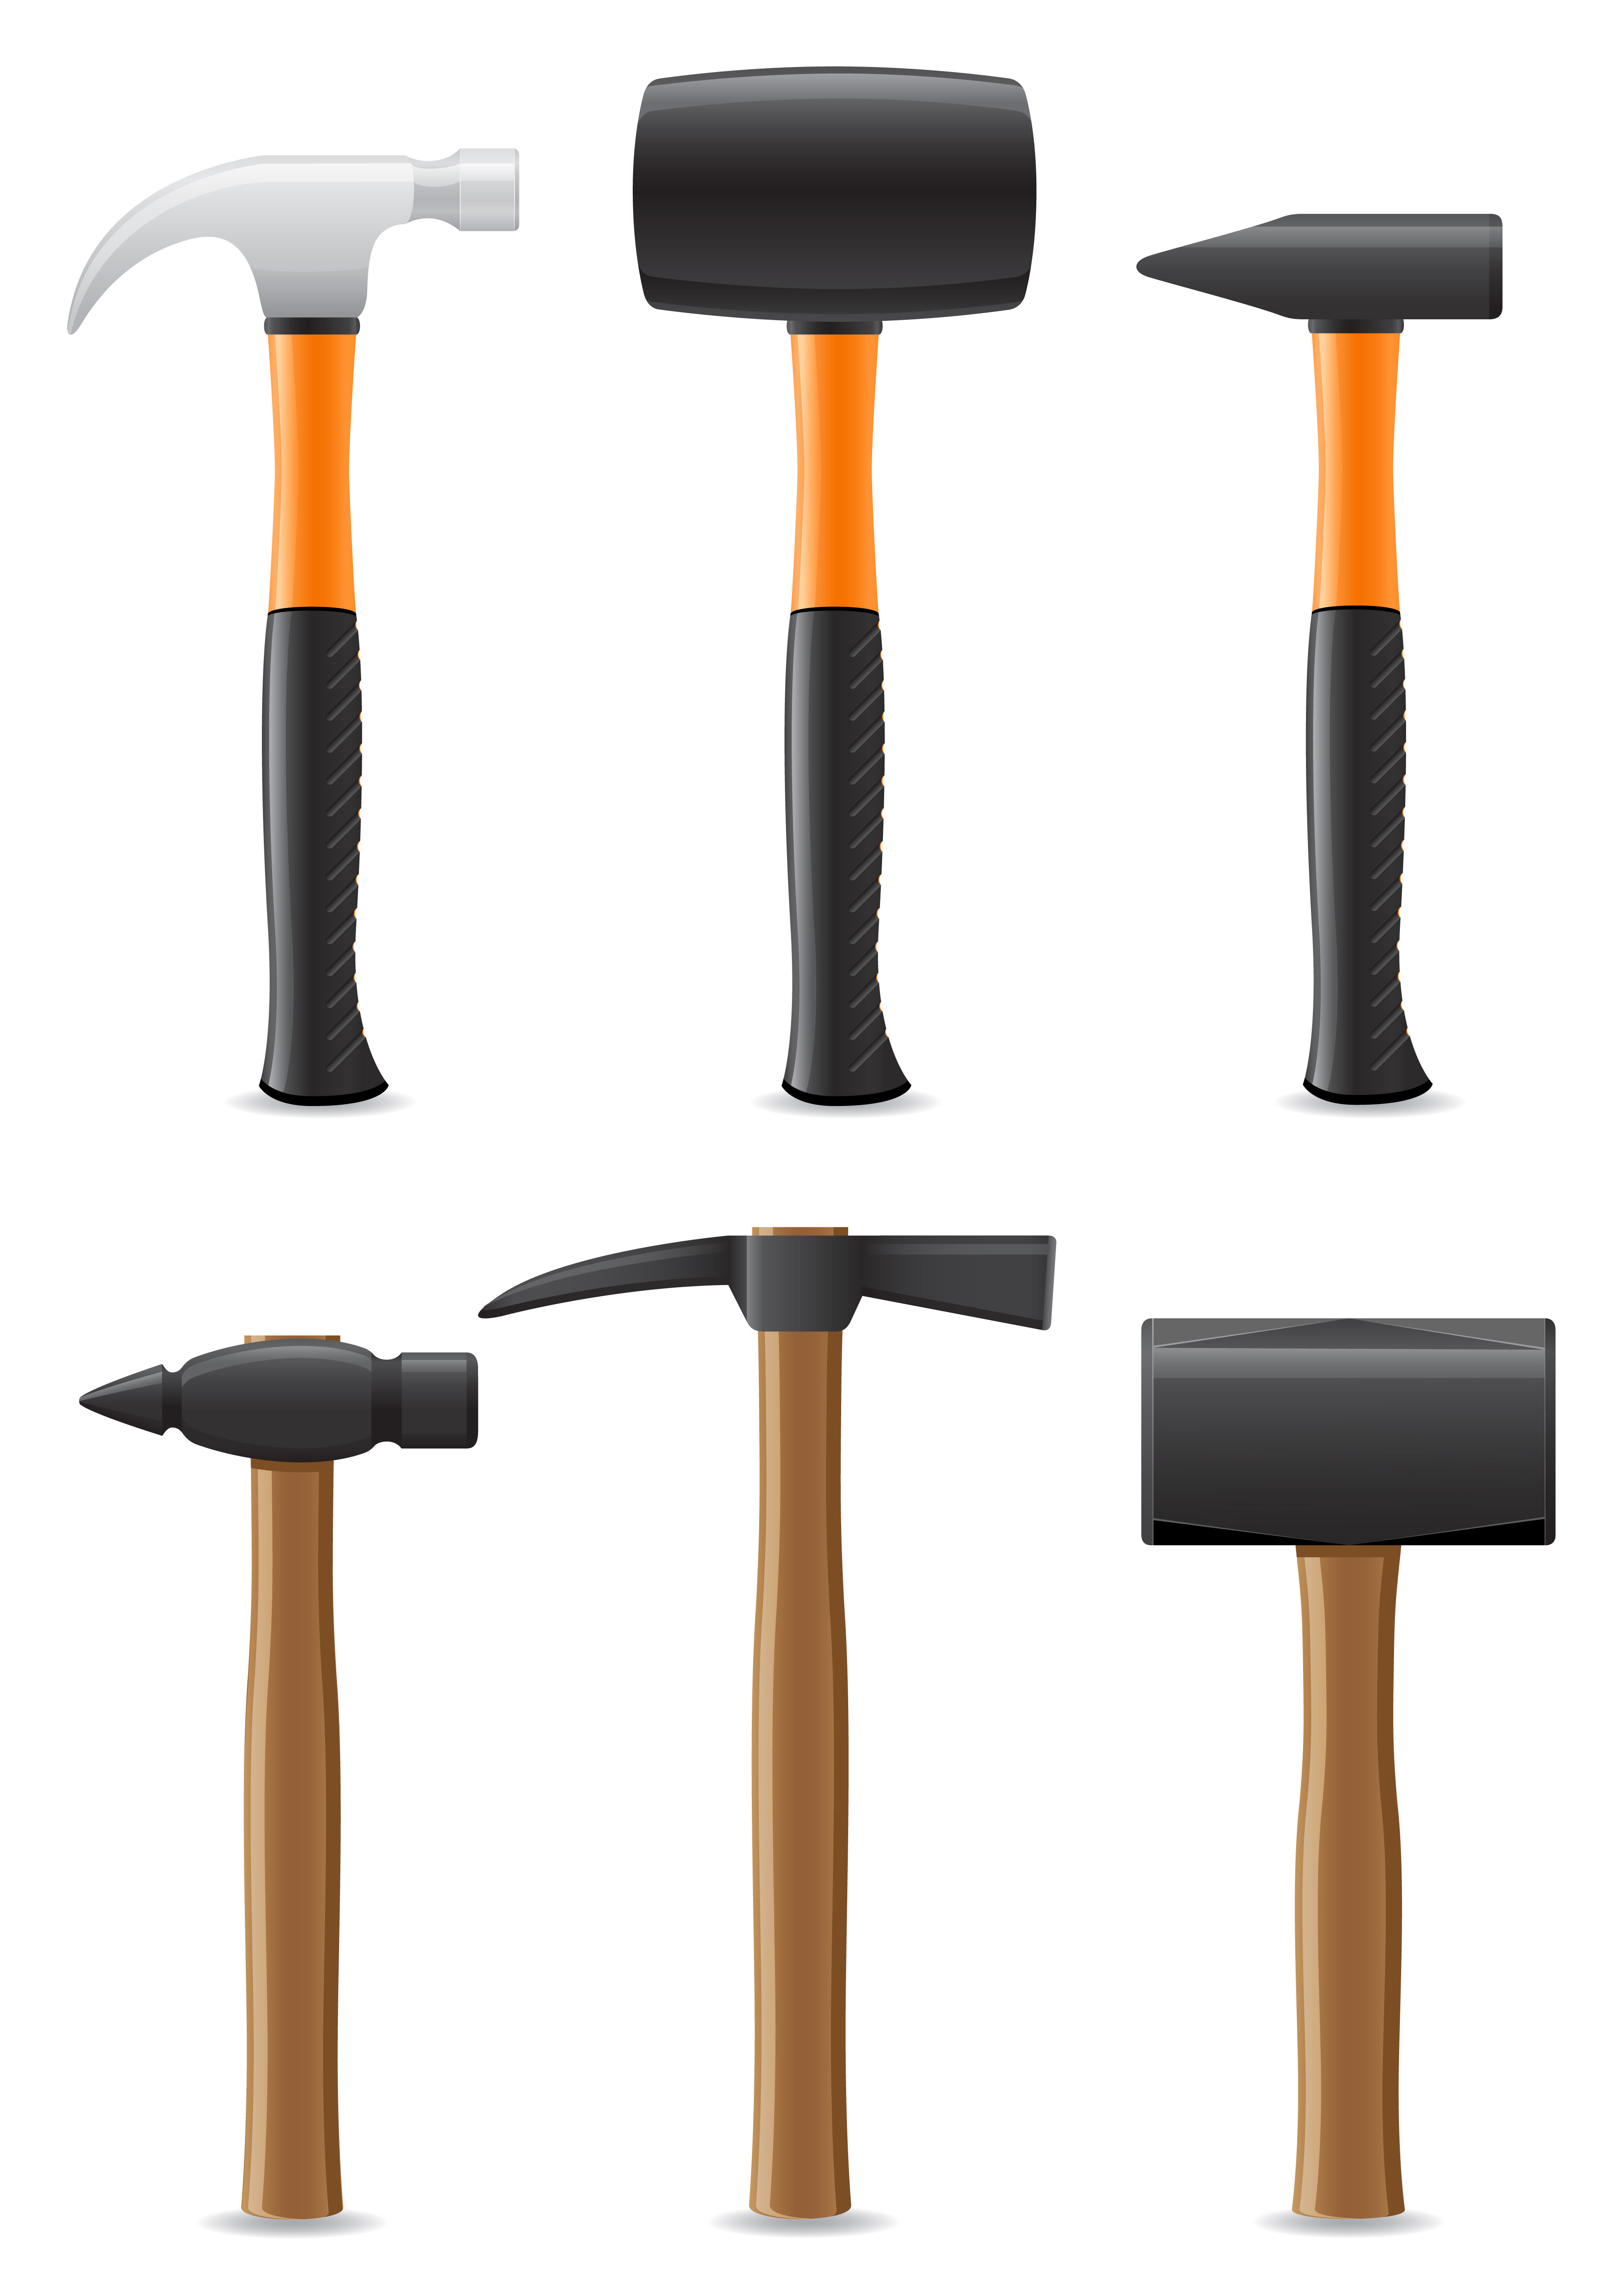 Vector Illustration Hammer: Tool Hammer With Wooden And Plastic Handle Vector